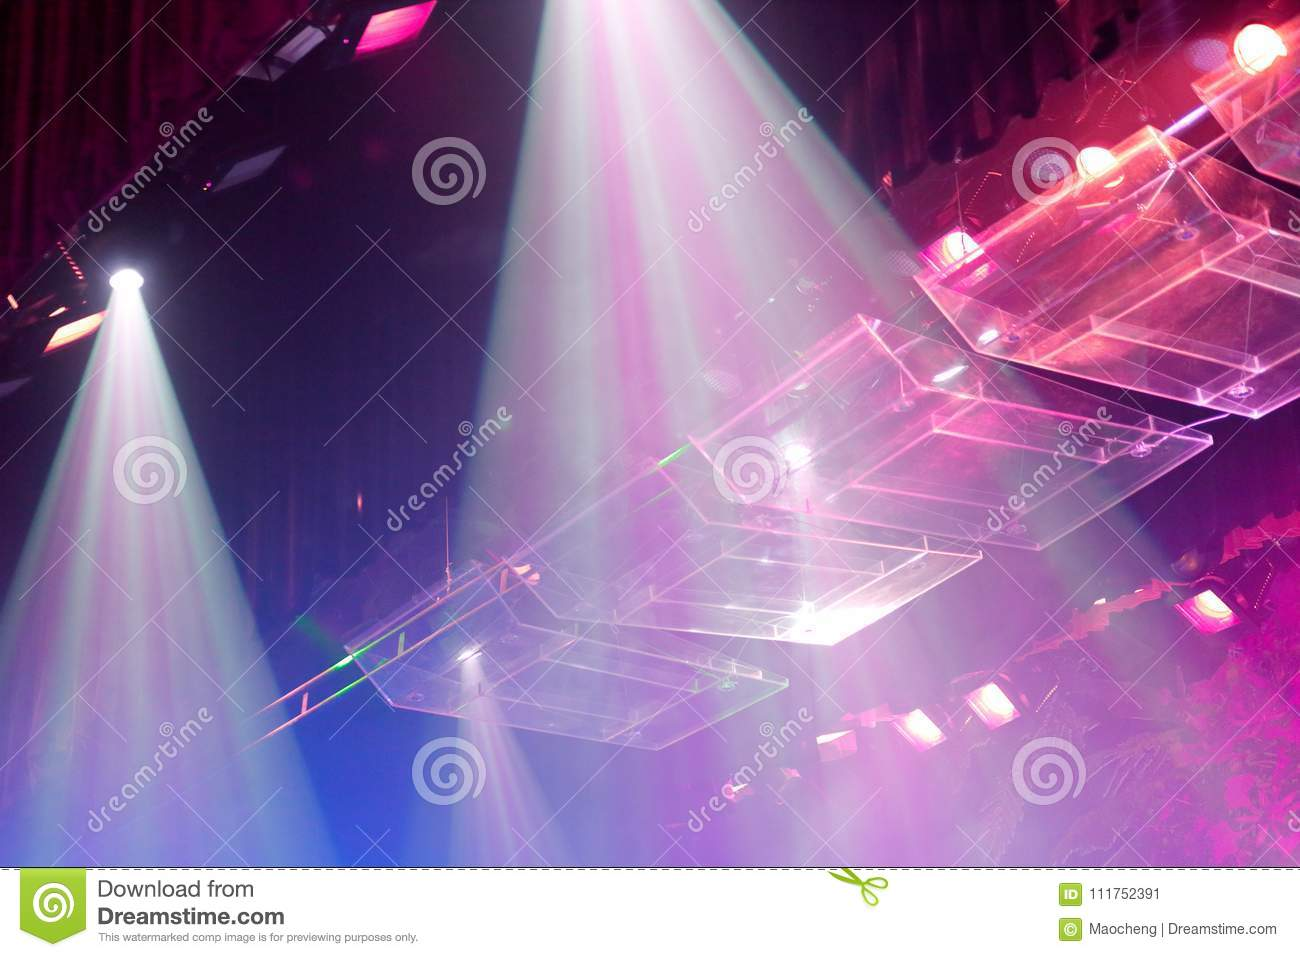 Stage ultra violet lights, srgb image